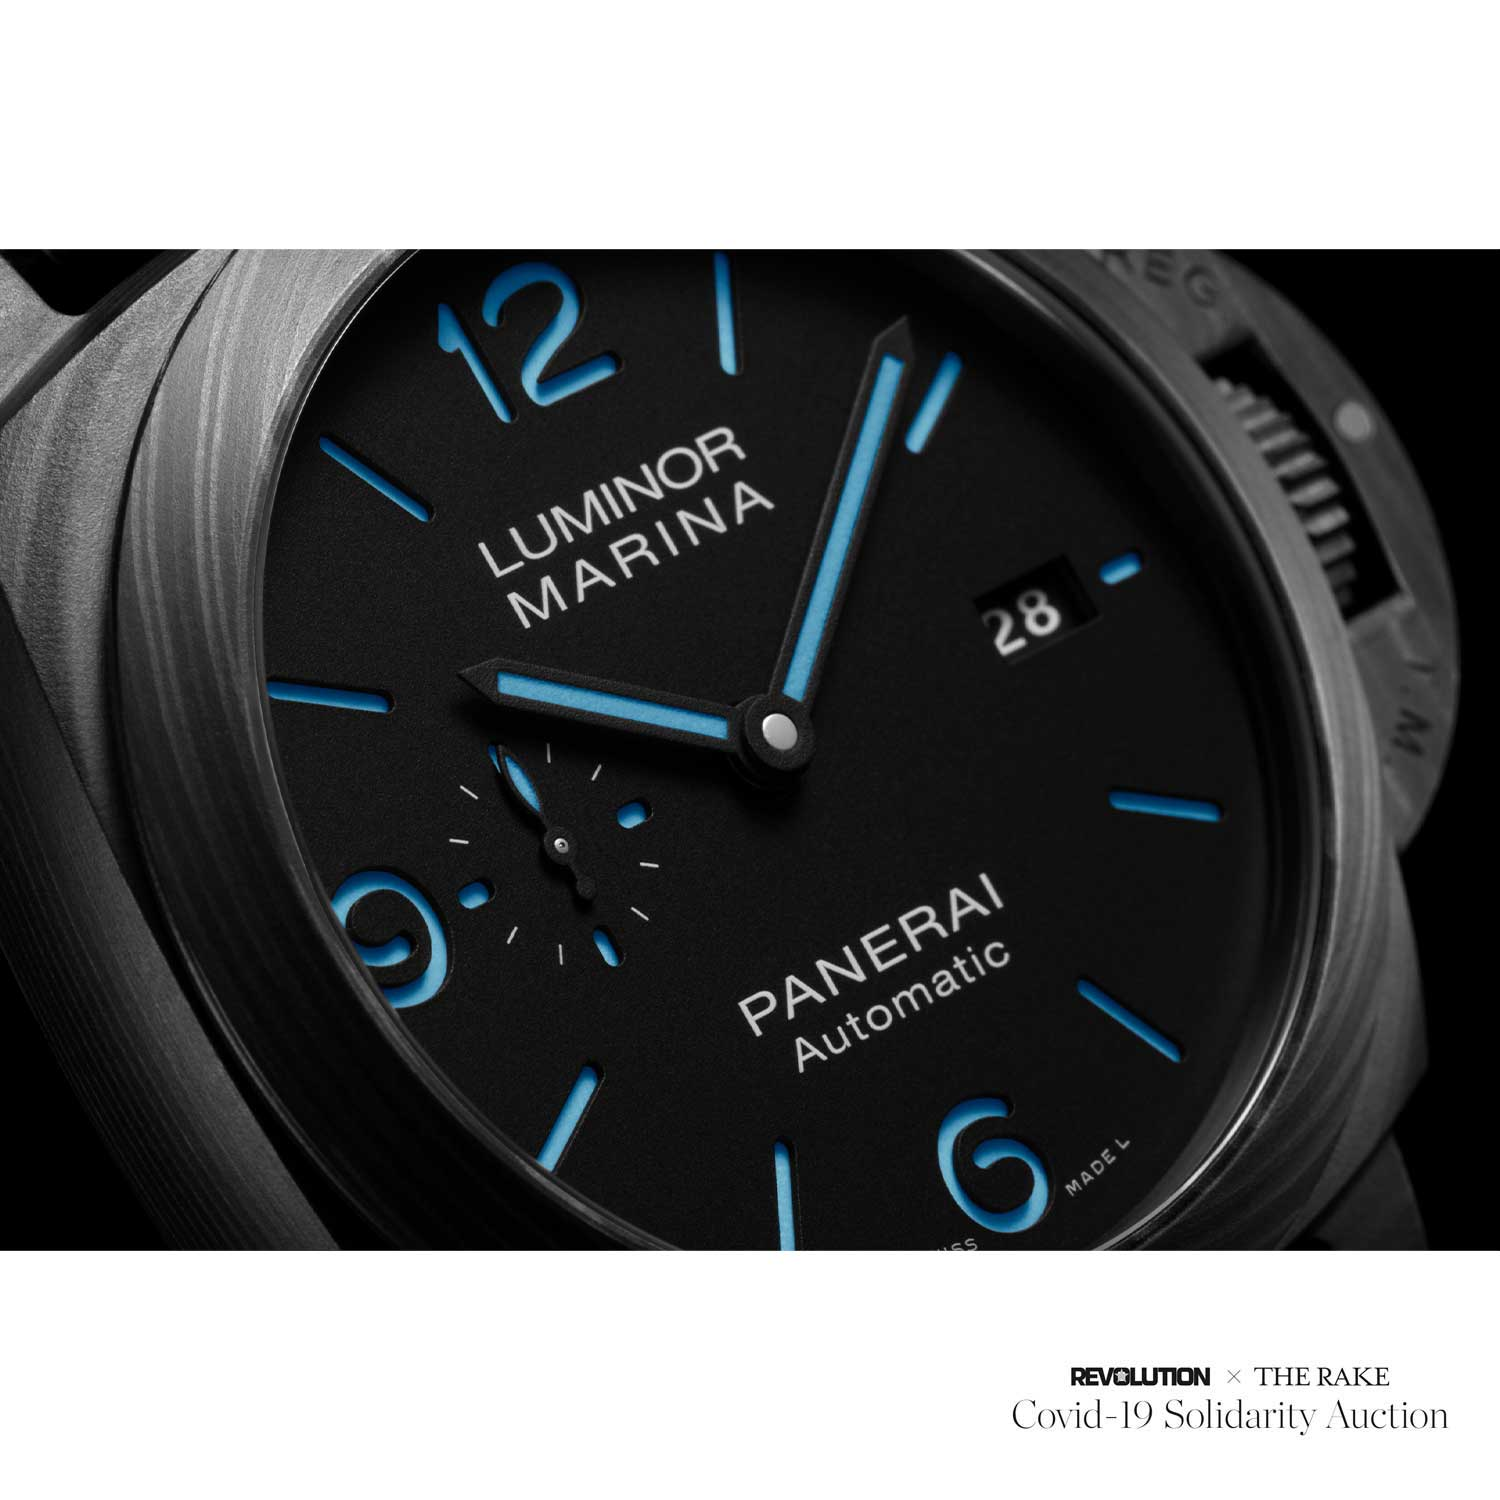 Factory Prototype Luminor Marina PAM 1661 Carbotech 44 with blue indexes for Revolution x The Rake Covid-19 Solidarity Auction